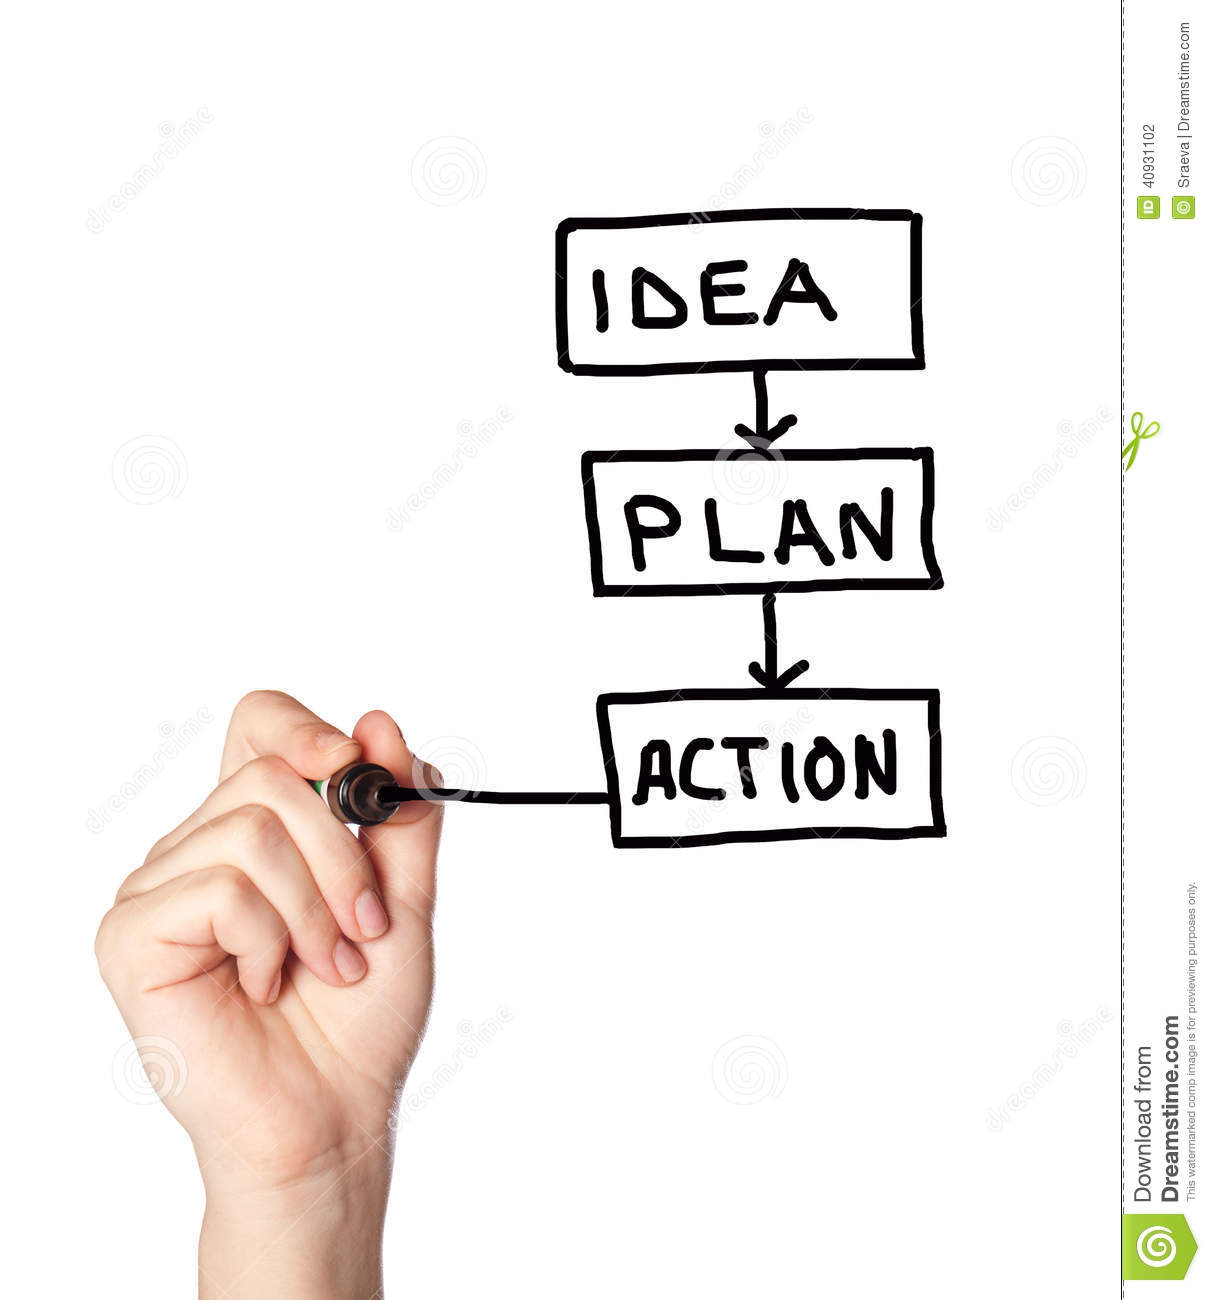 how to turn an idea into a business plan